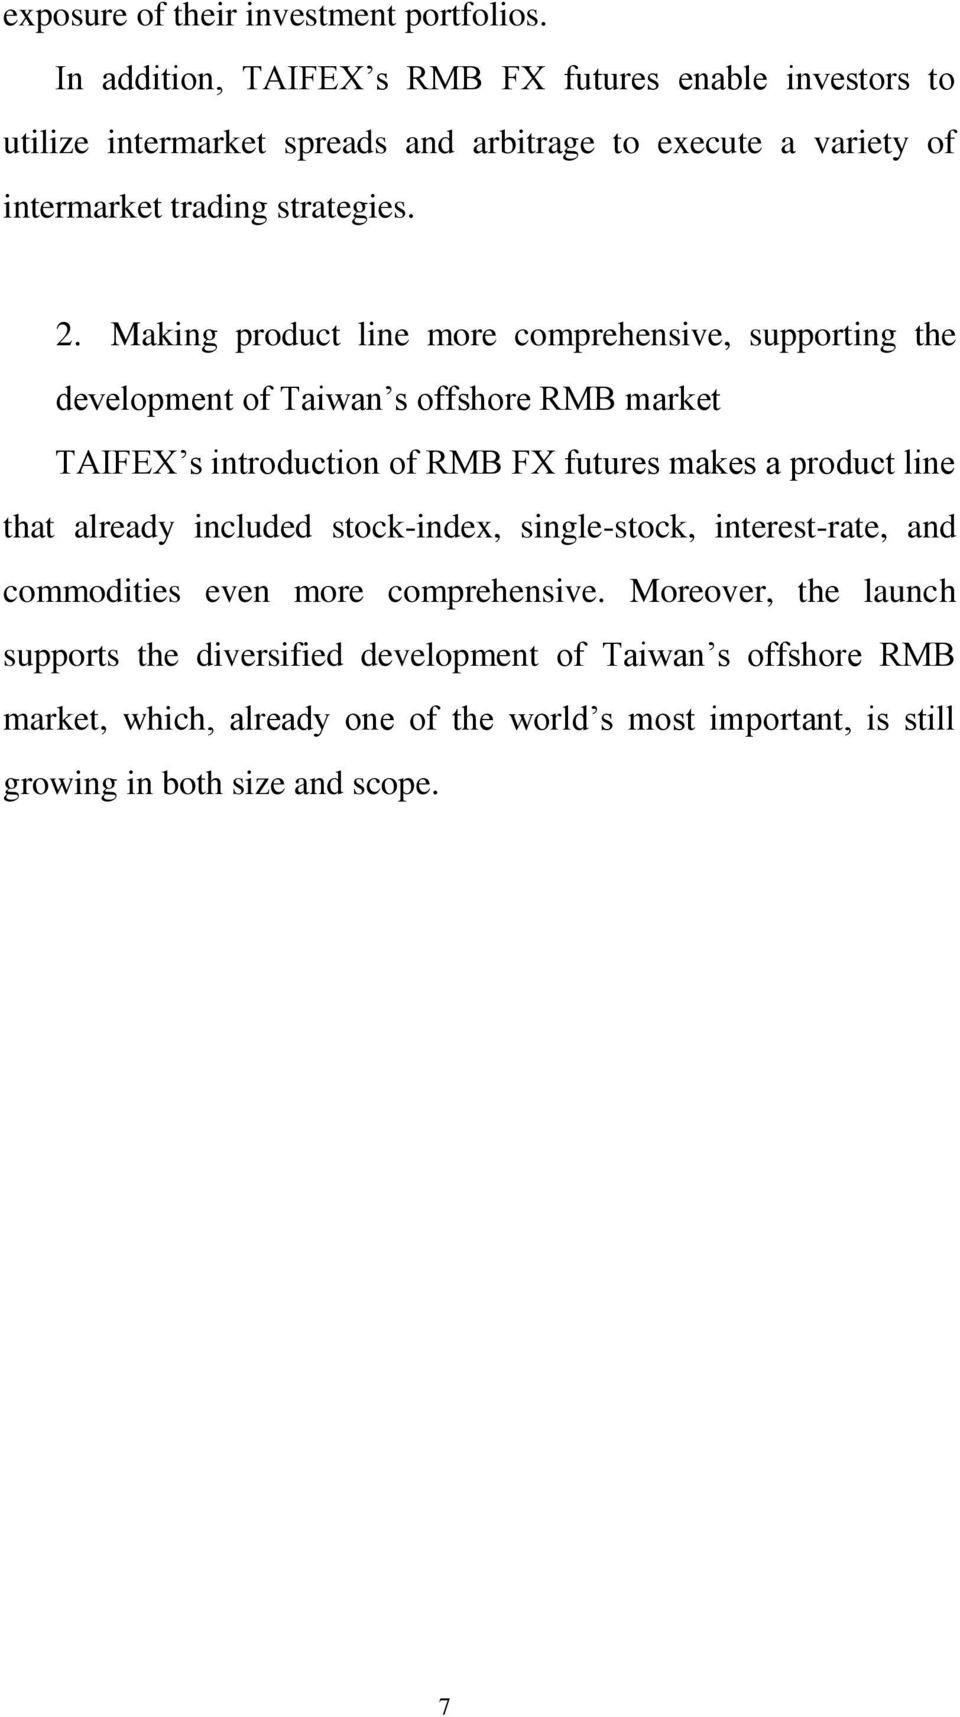 Making product line more comprehensive, supporting the development of Taiwan s offshore RMB market TAIFEX s introduction of RMB FX futures makes a product line